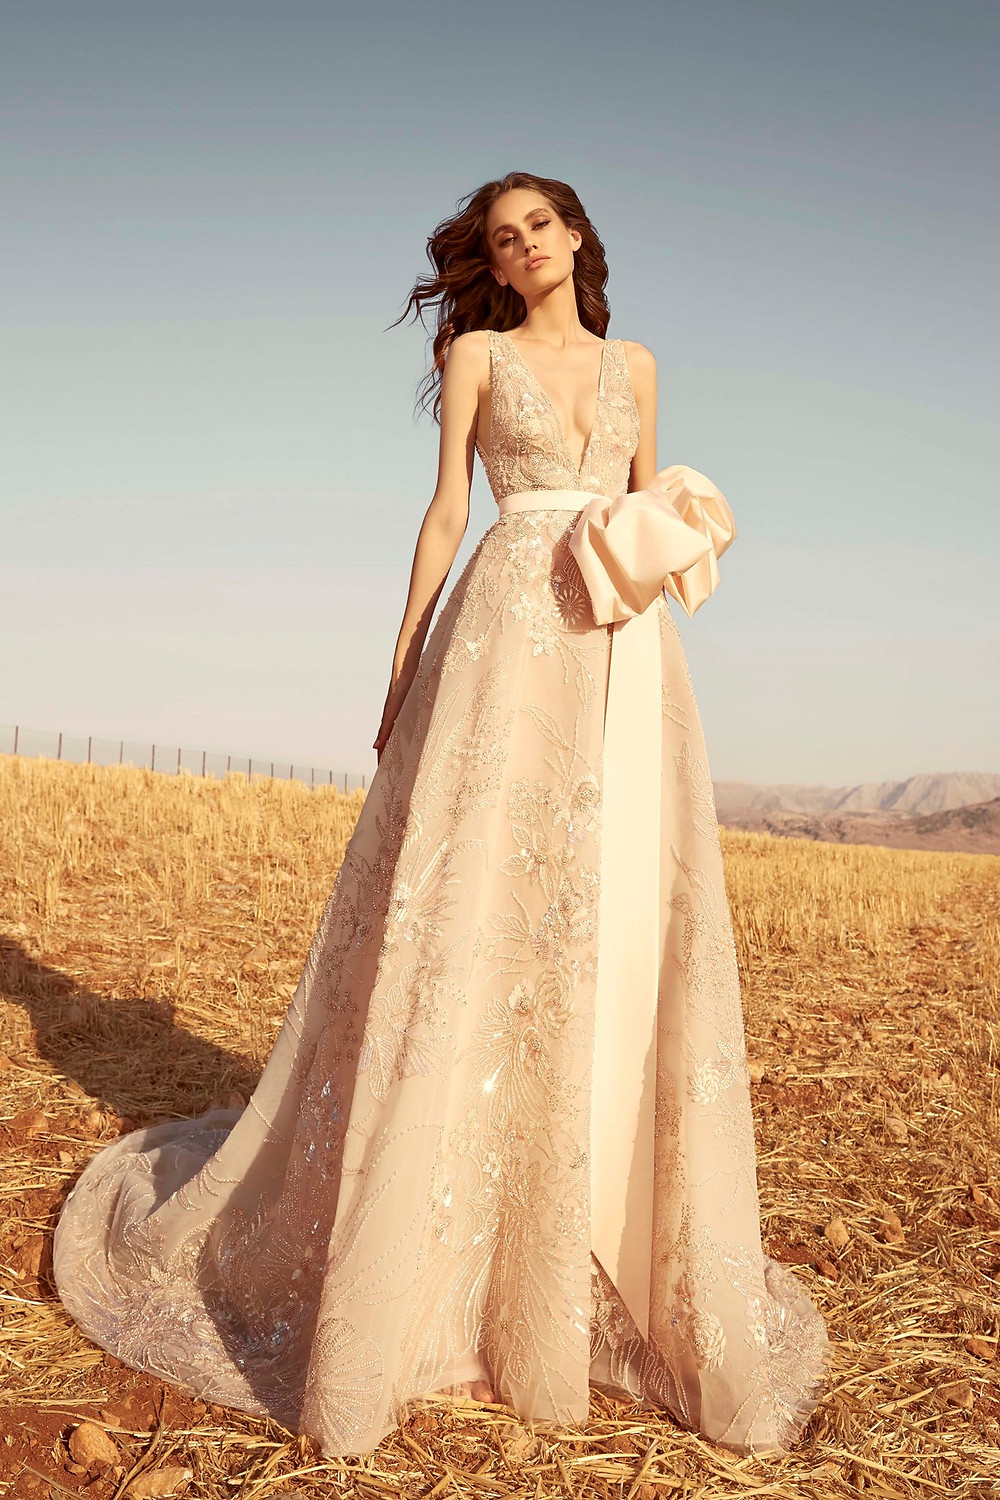 A Zuhair Murad blush A-line wedding dress with beading and a bow